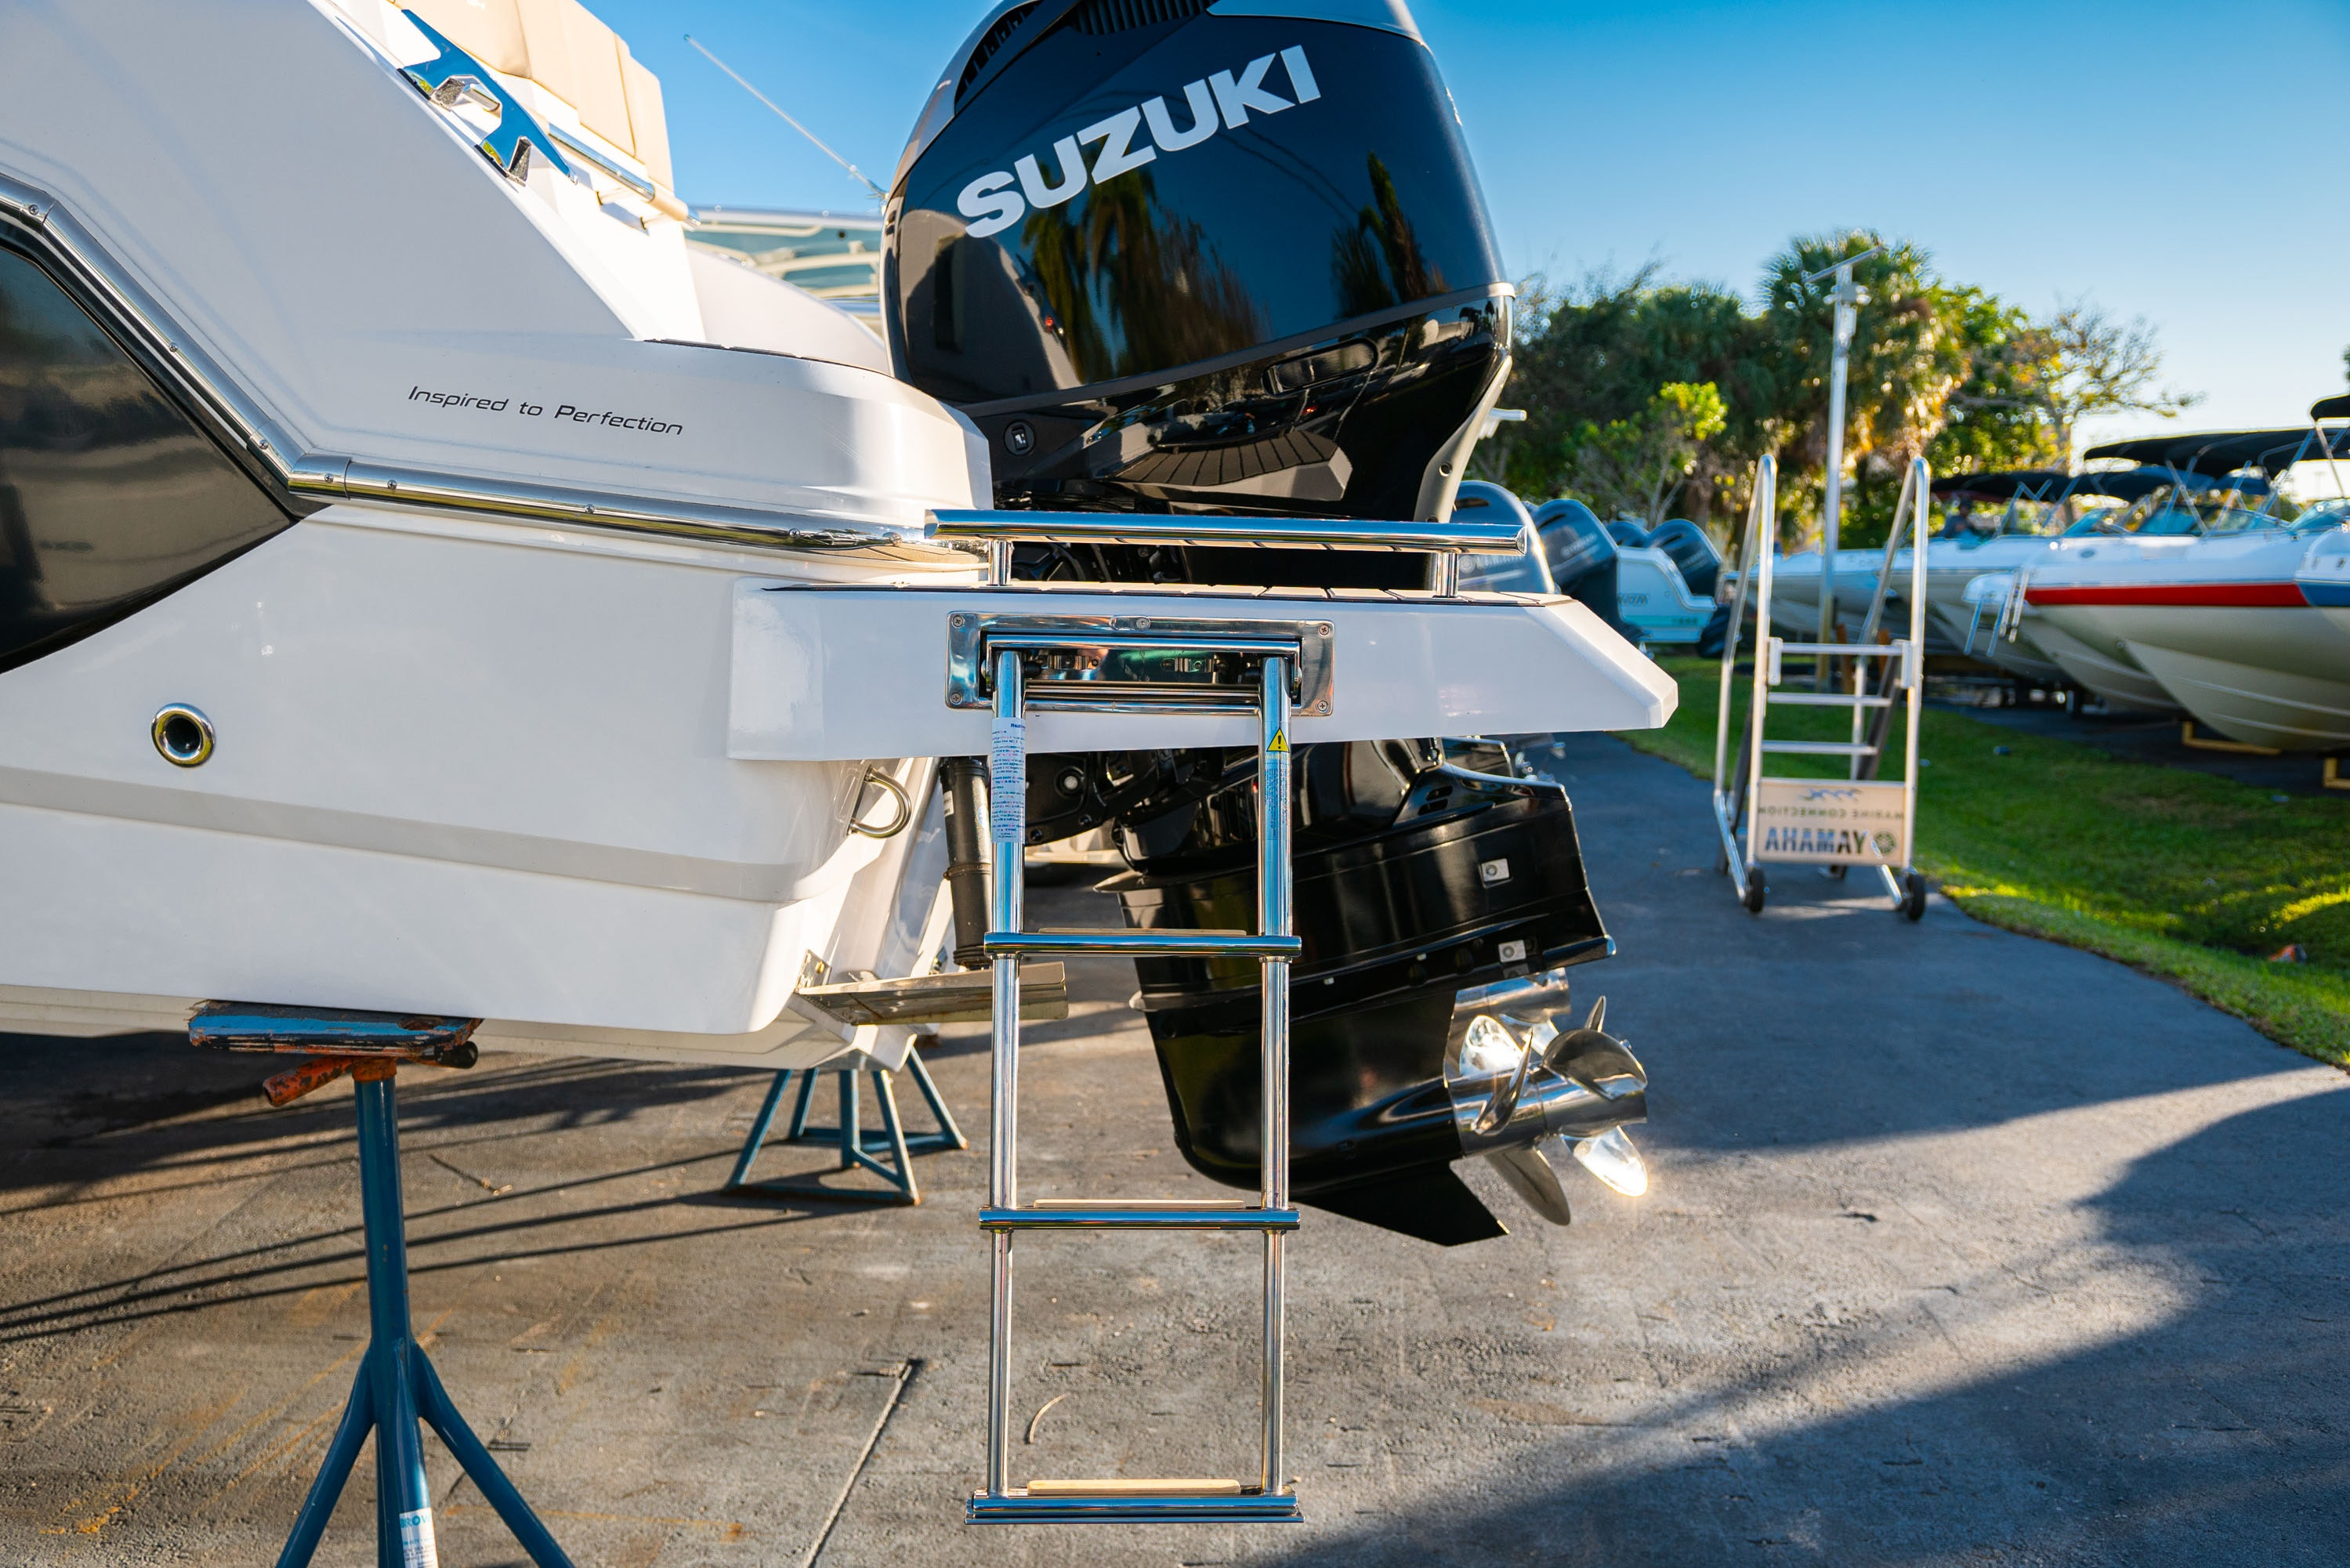 Thumbnail 4 for New 2019 Ranieri Next 370 SH boat for sale in West Palm Beach, FL